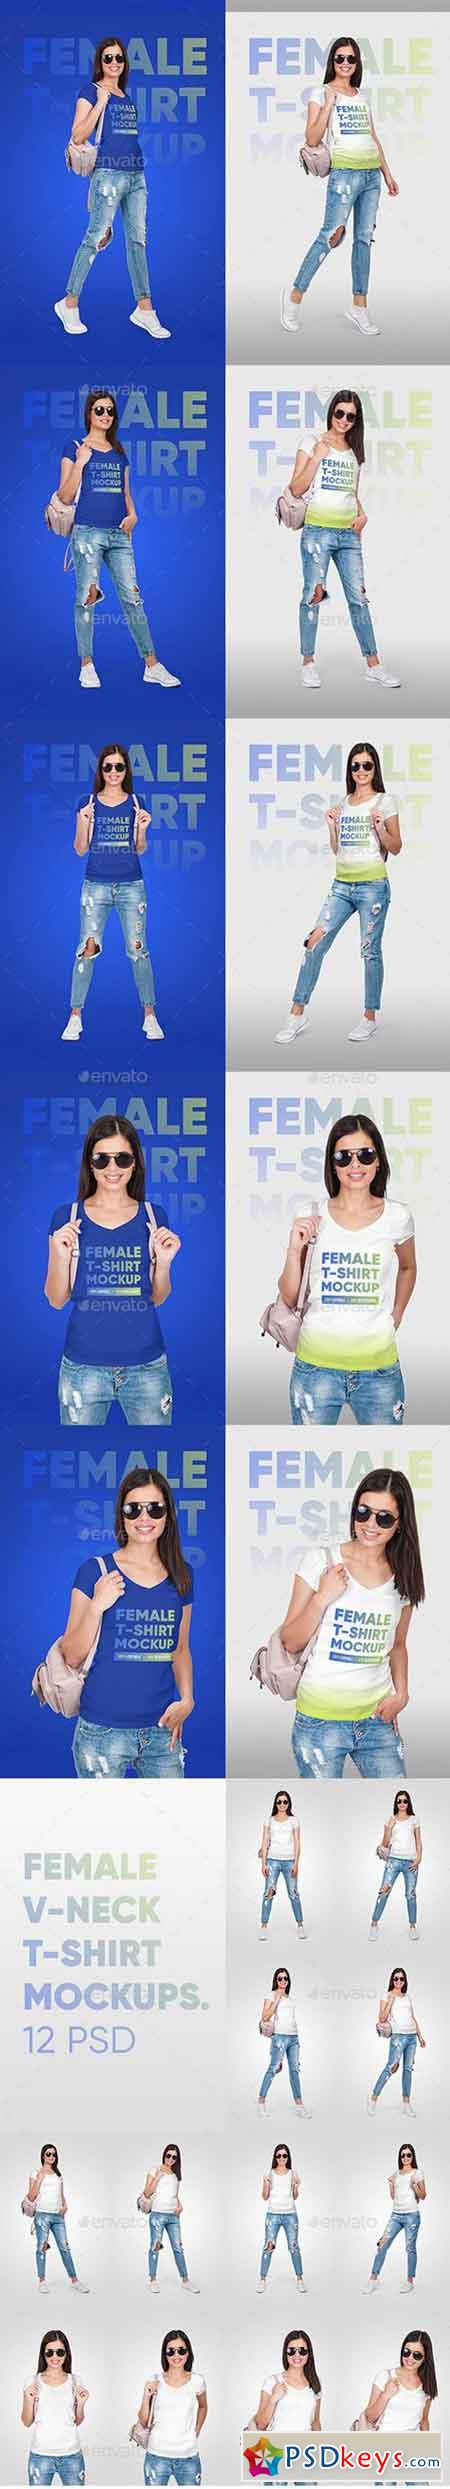 Female Vneck Tshirt And Backpack Mockups 22114447